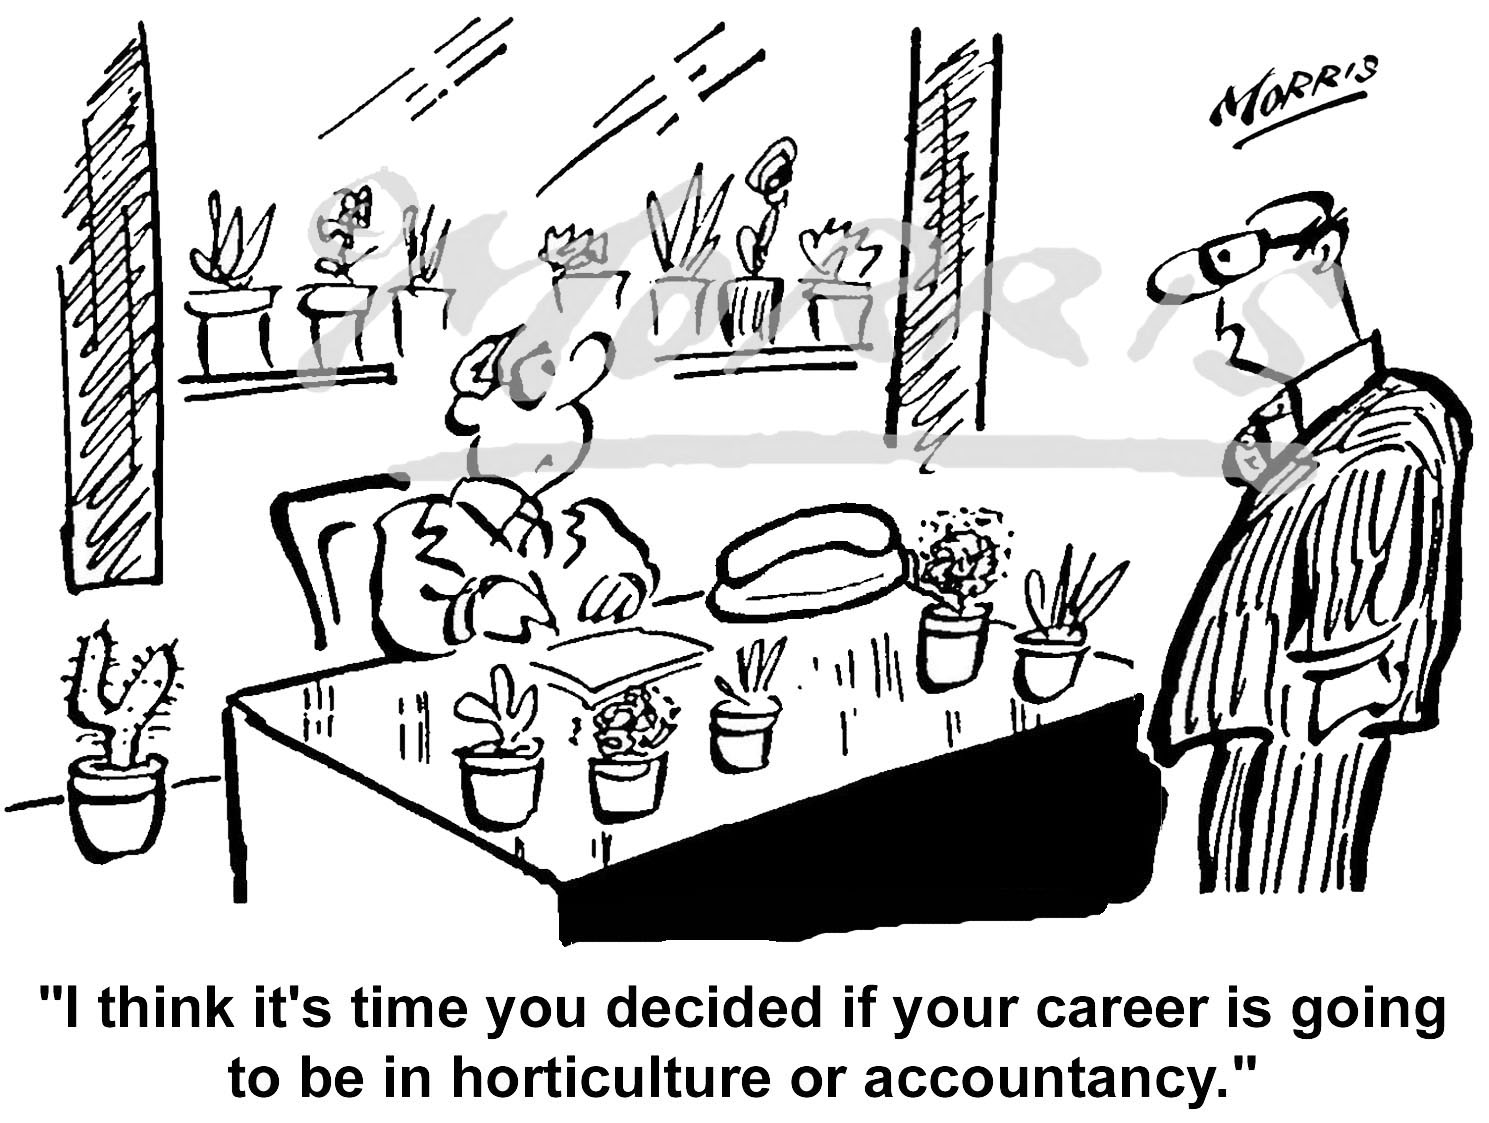 Accountancy cartoon – Ref: 4191bw